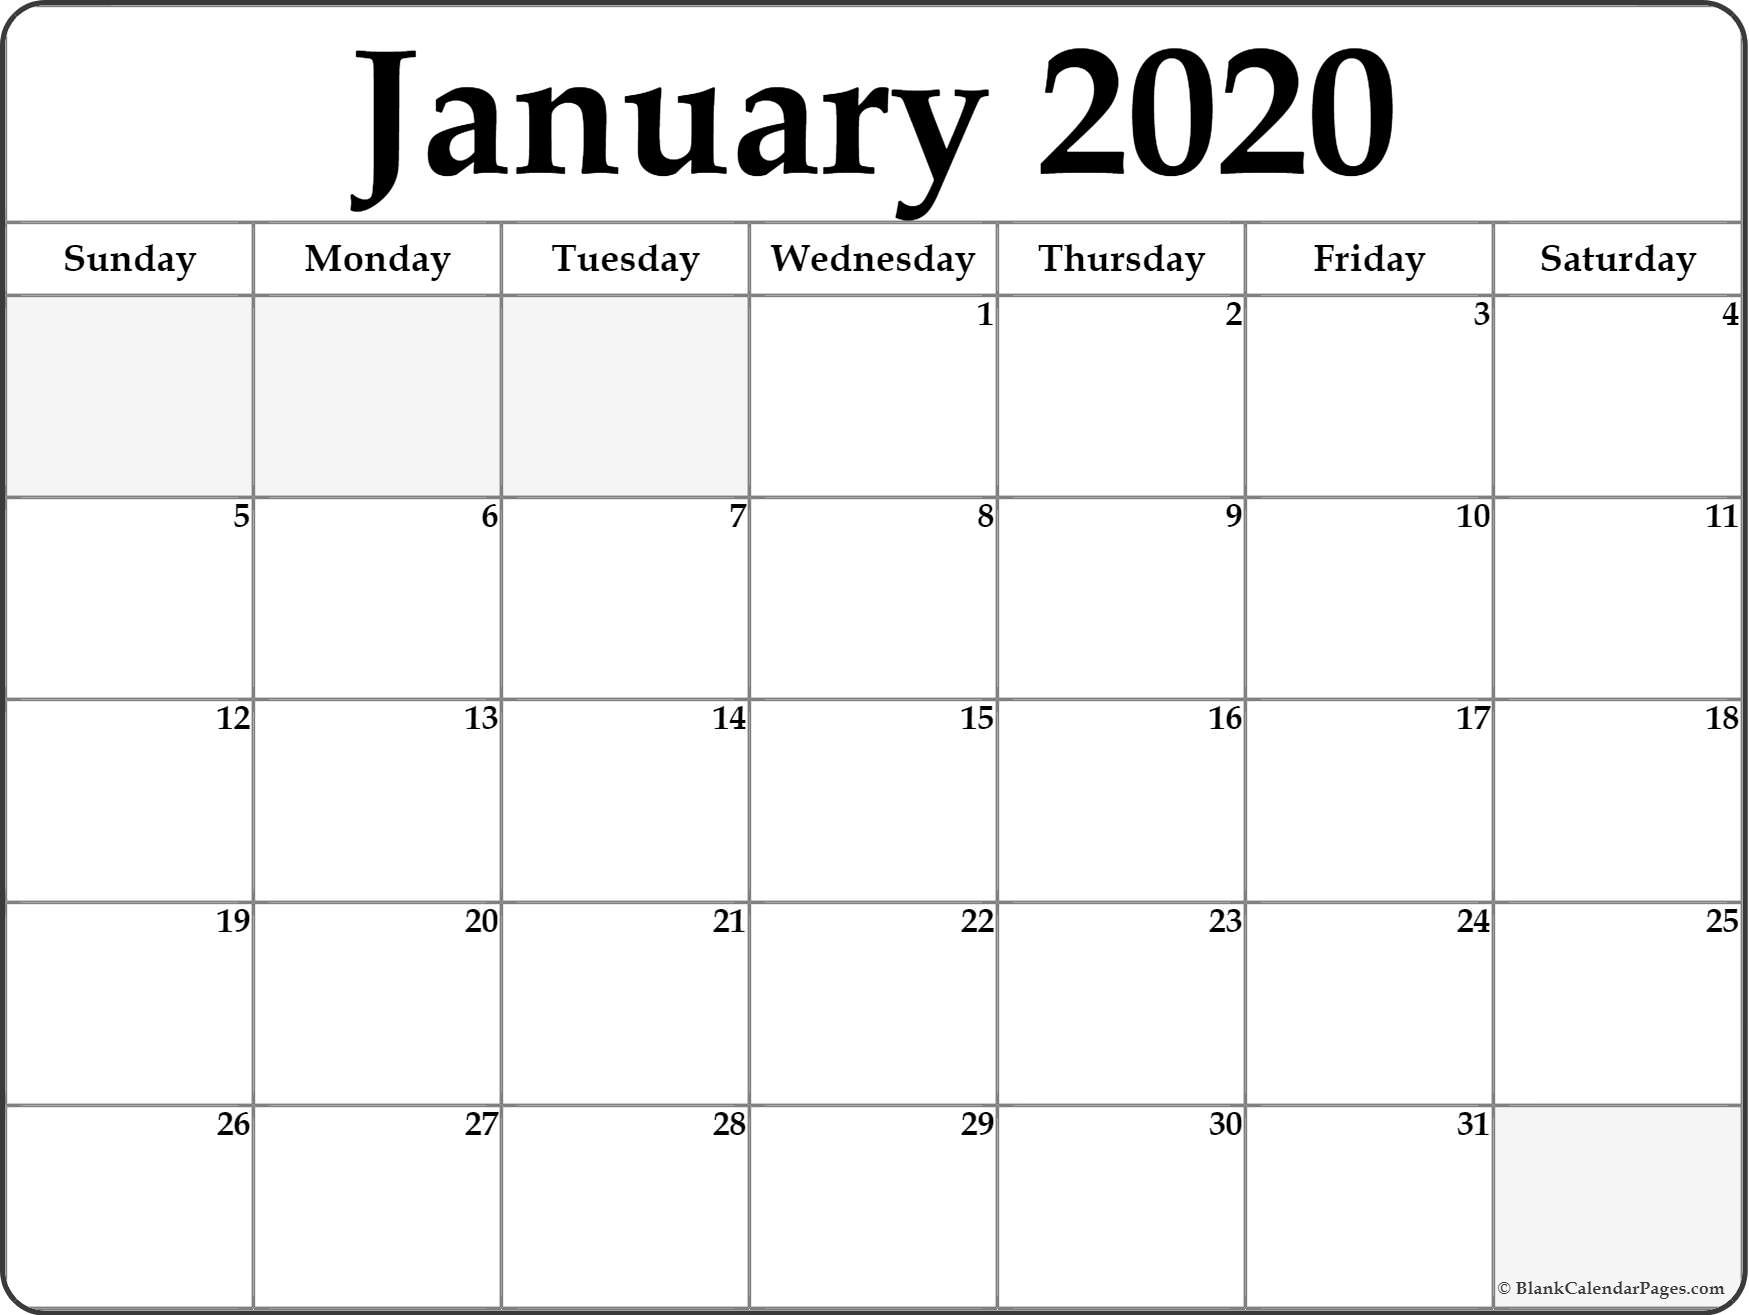 January 2020 Calendar | Free Printable Monthly Calendars-Blank 2 Pages Calendar 2020